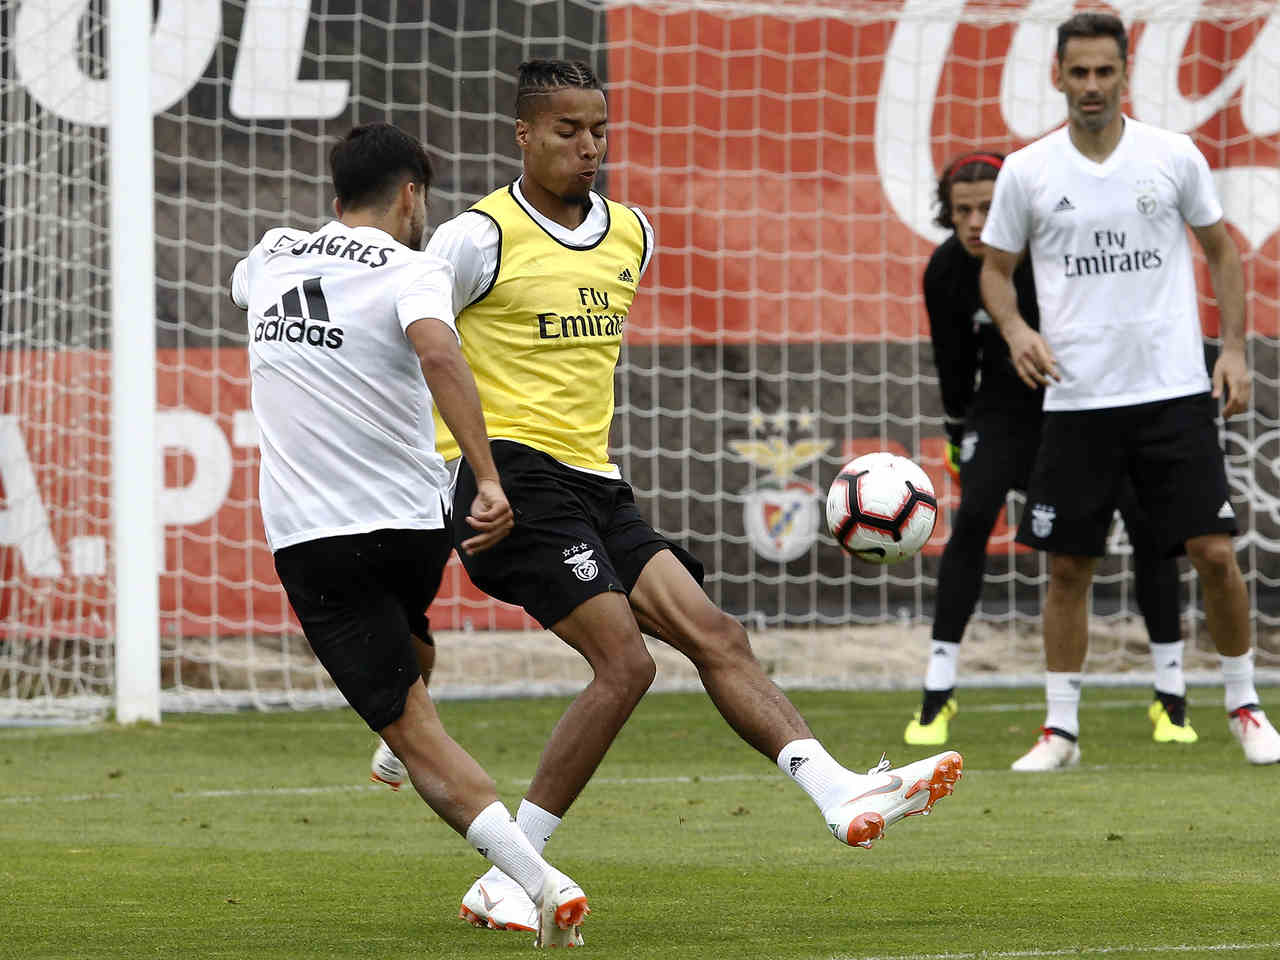 Ebuehi Suffers Another Injury Setback At Benfica, To Miss Some Games